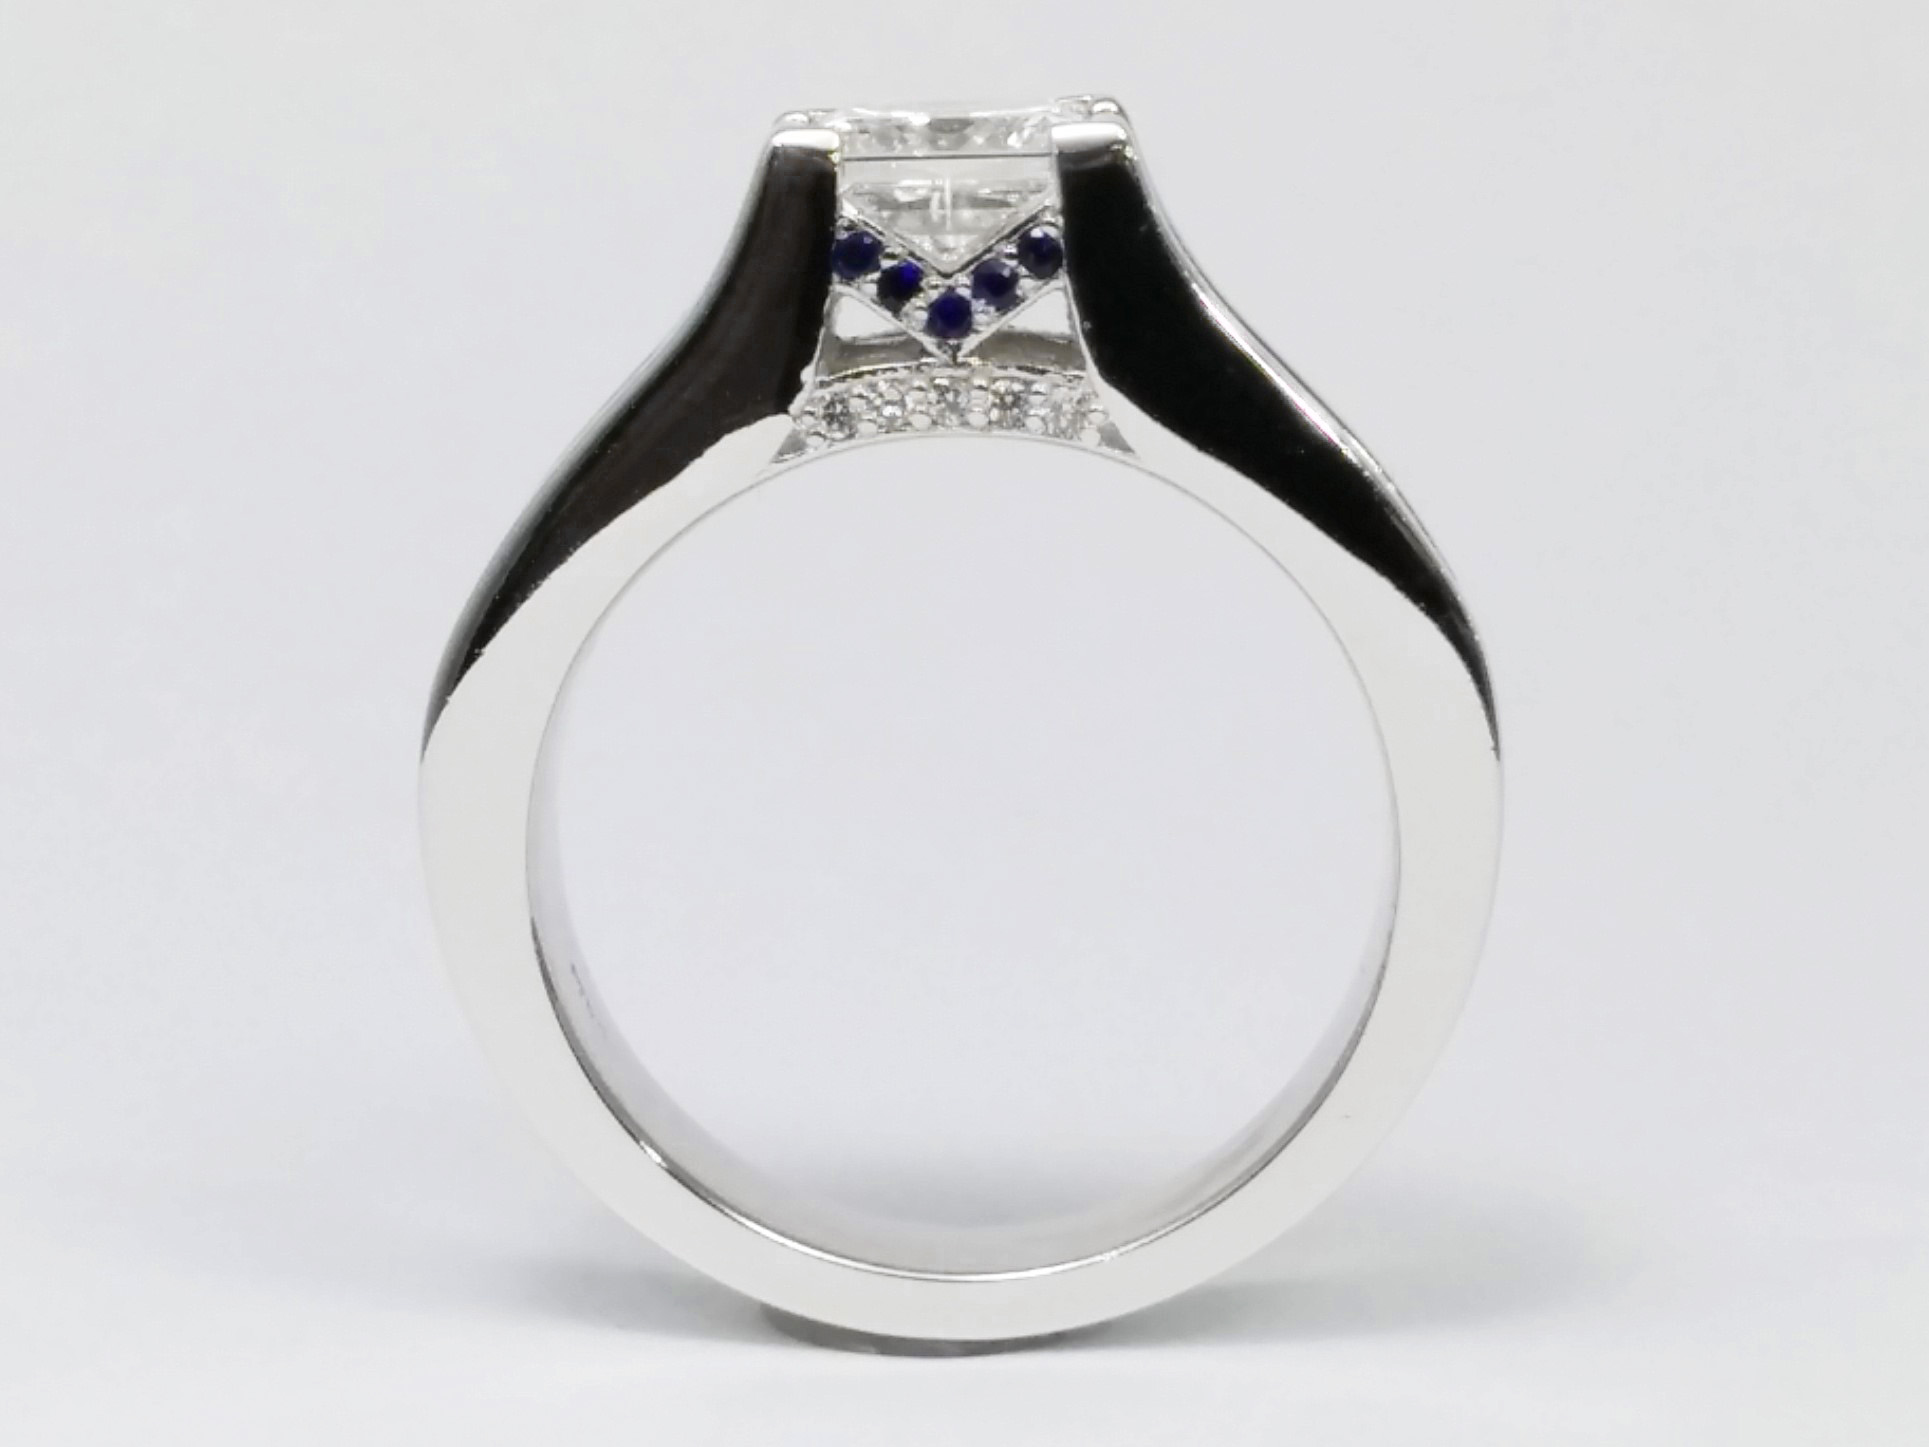 Modern Princess Diamond Engagement Ring princess Diamonds and Blue Sapphires on Band 14K White Gold